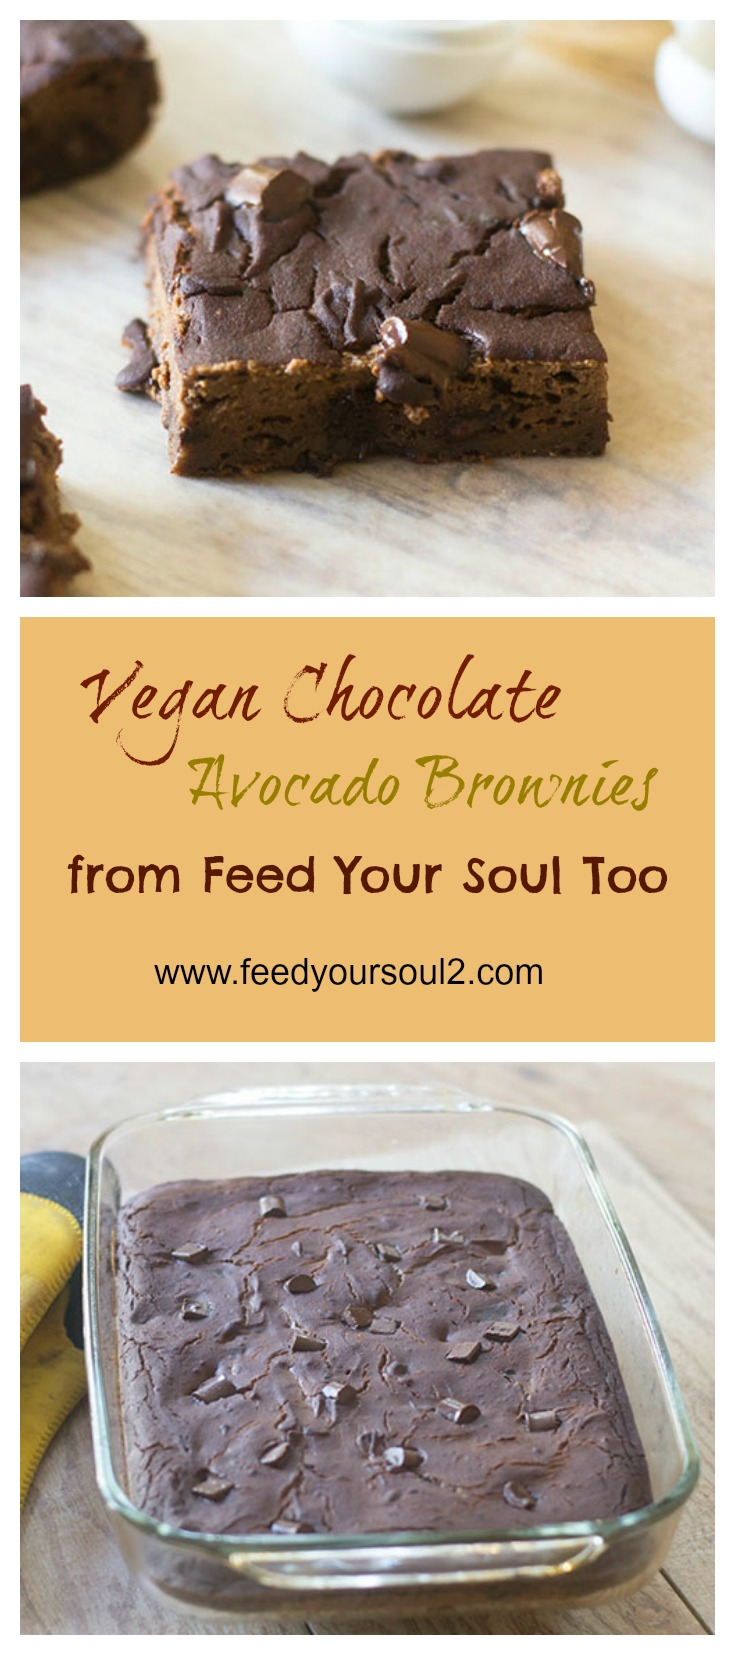 Vegan Chocolate Avocado Brownies #Vegan #chocolate #avocados | feedyoursoul2.com